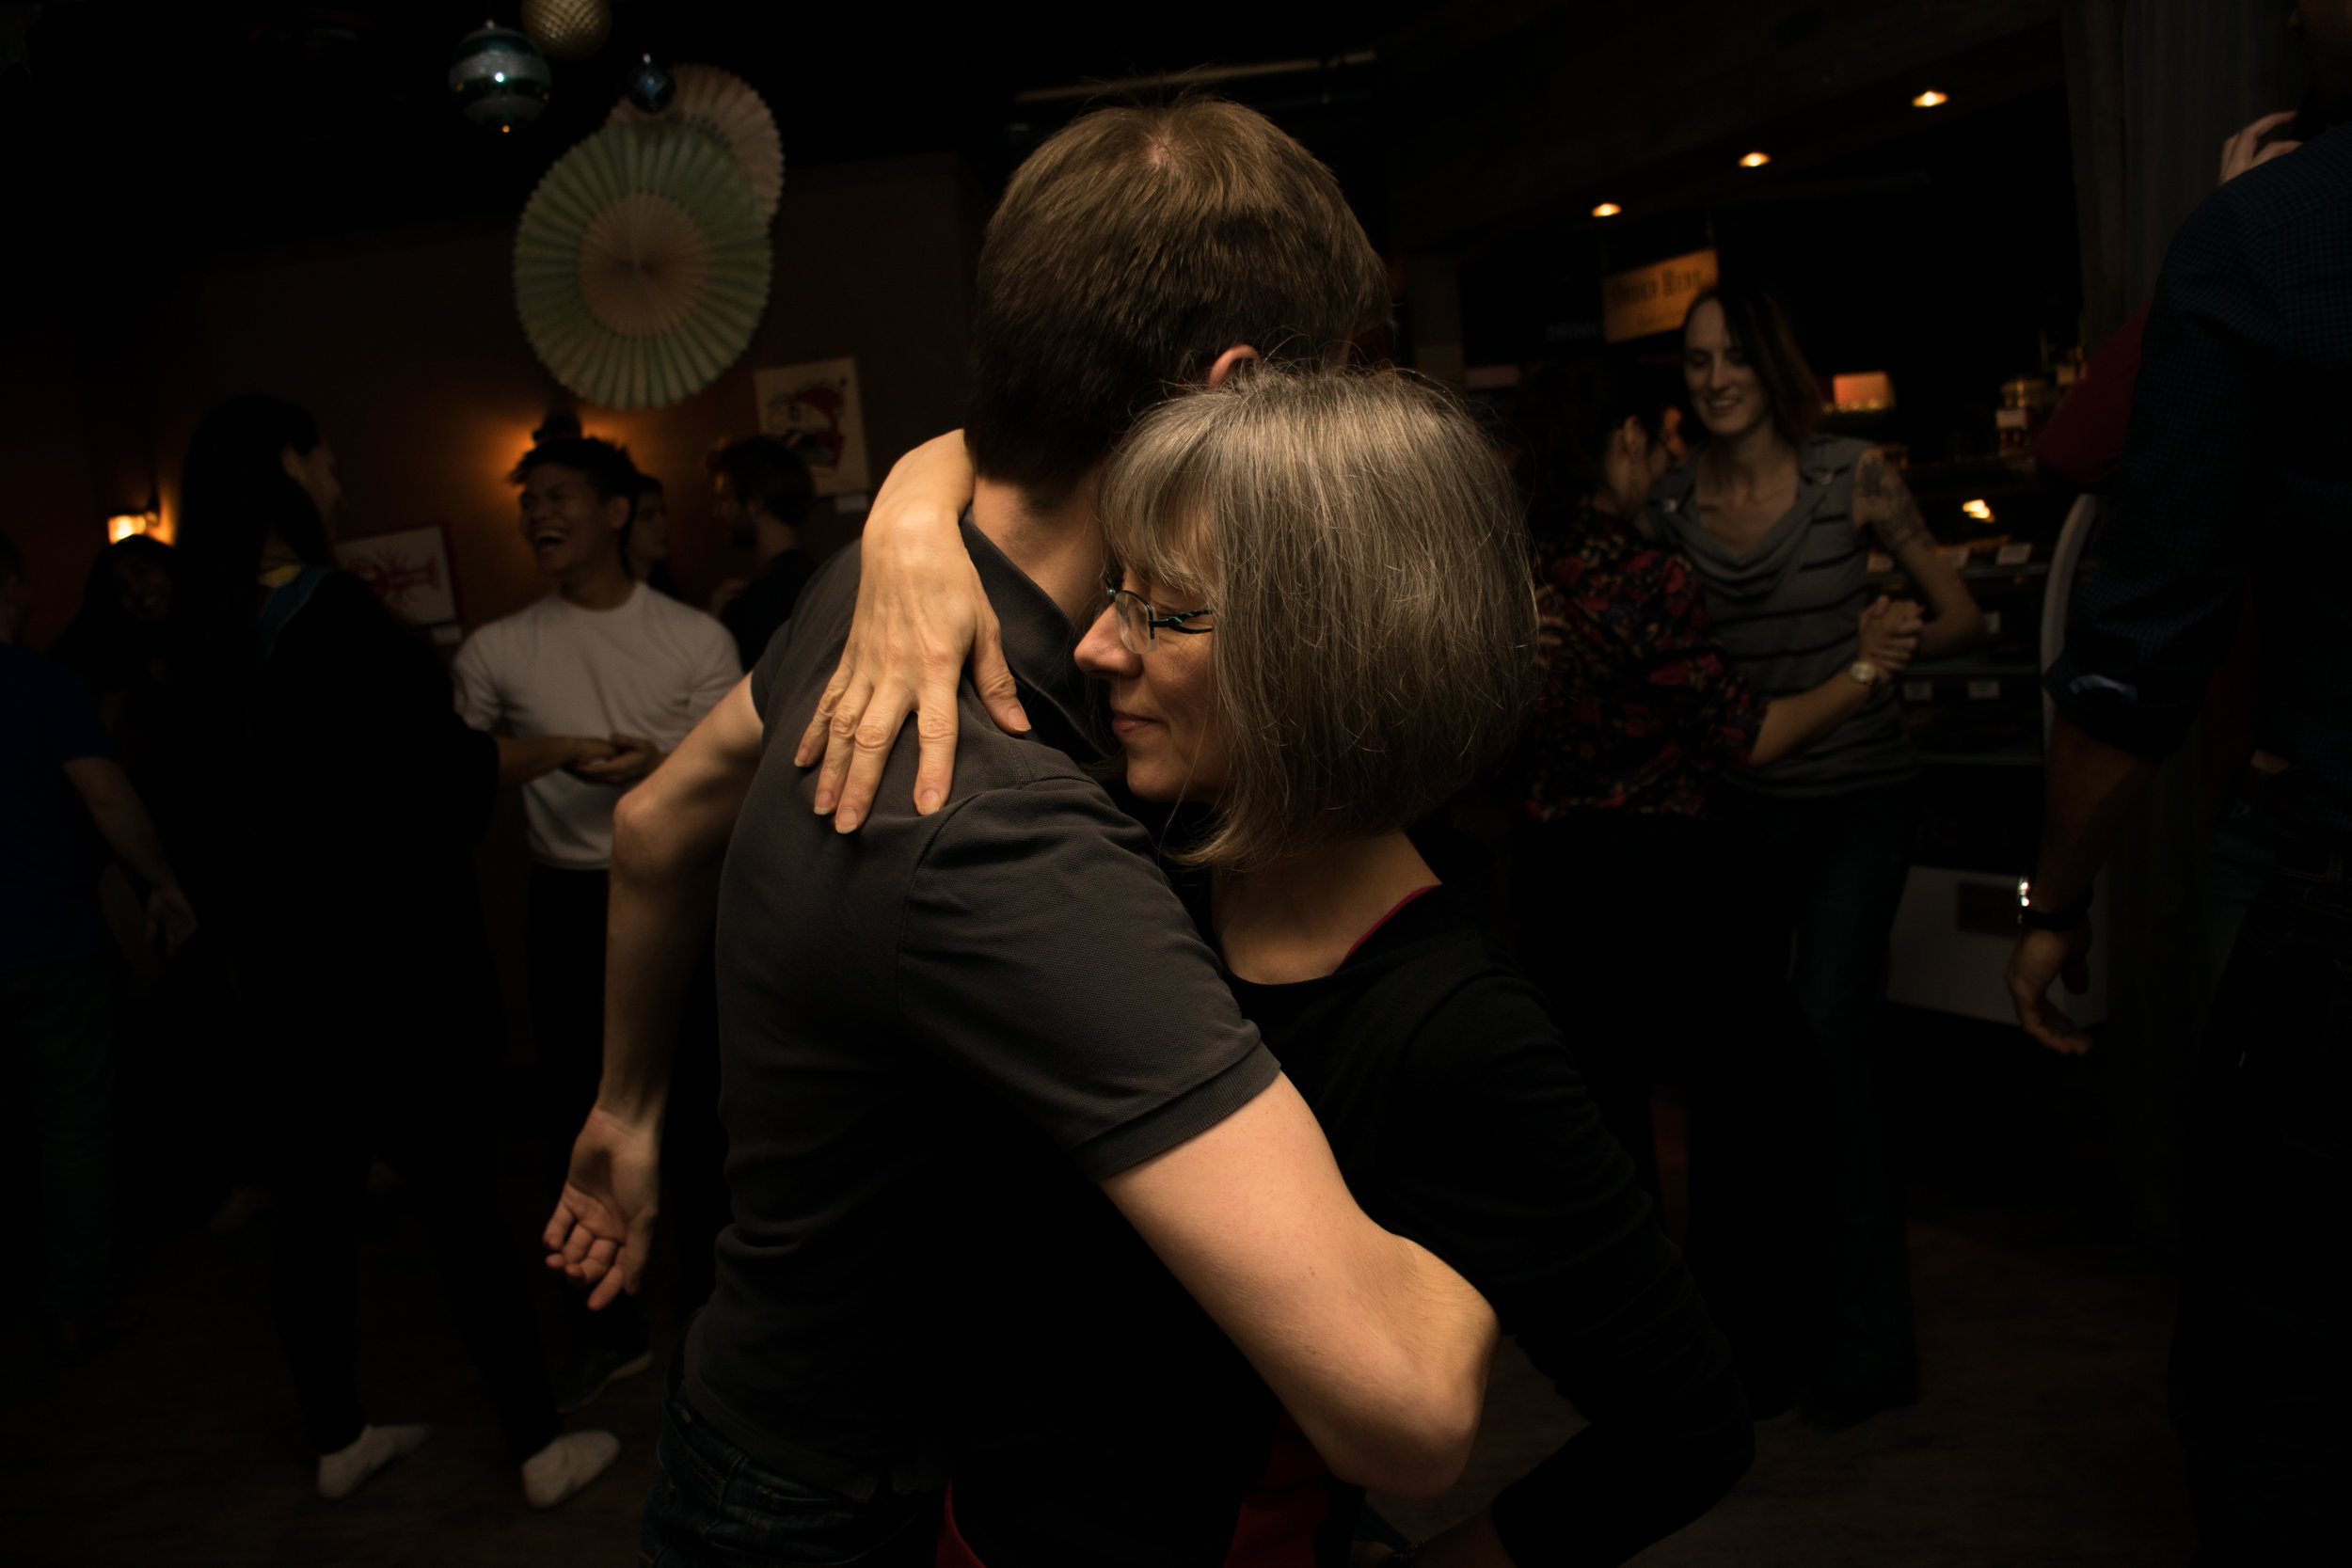 In a social dance environment... - Our goal is to ensure everyone is comfortable and safe. If anyone is making you uncomfortable, please let a staff member or volunteer know.As a private event, we reserve the right to ask anyone to leave if they disrupt the event, enjoyment of others or any other reason we deem reasonable.